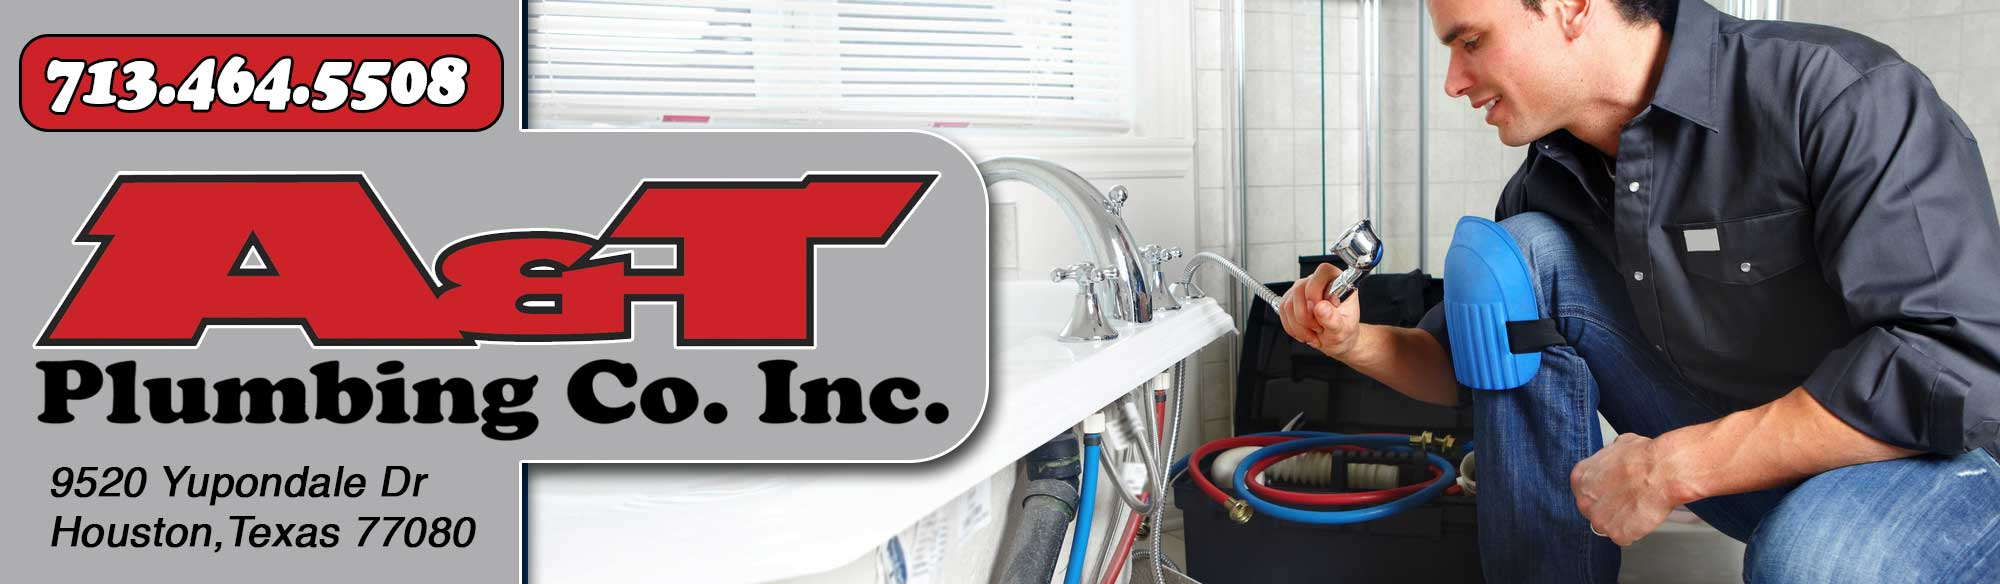 New Construction Plumbing Services in the Houston Area